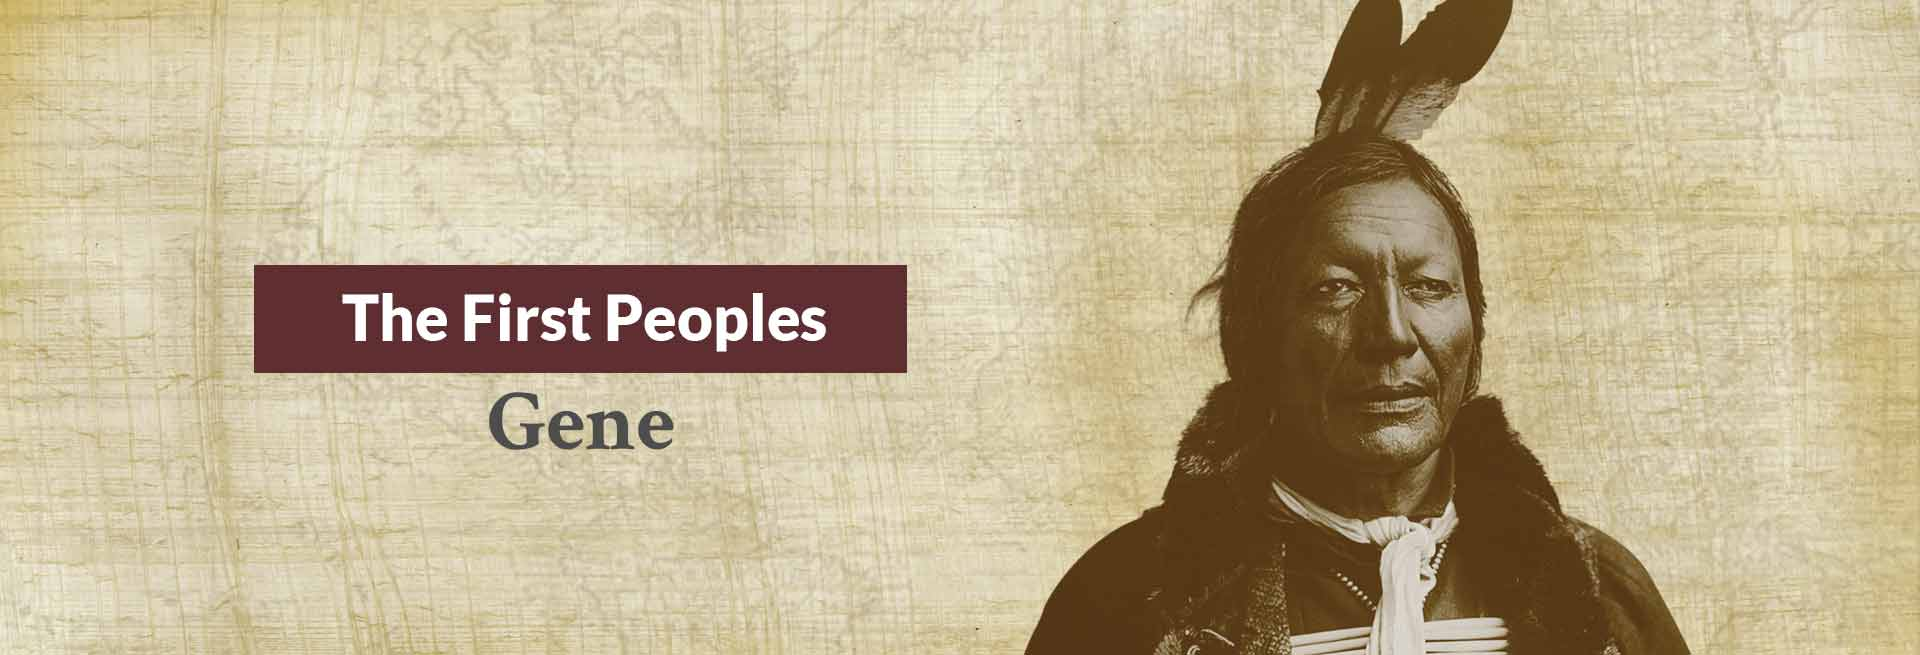 The First Peoples Gene Banner